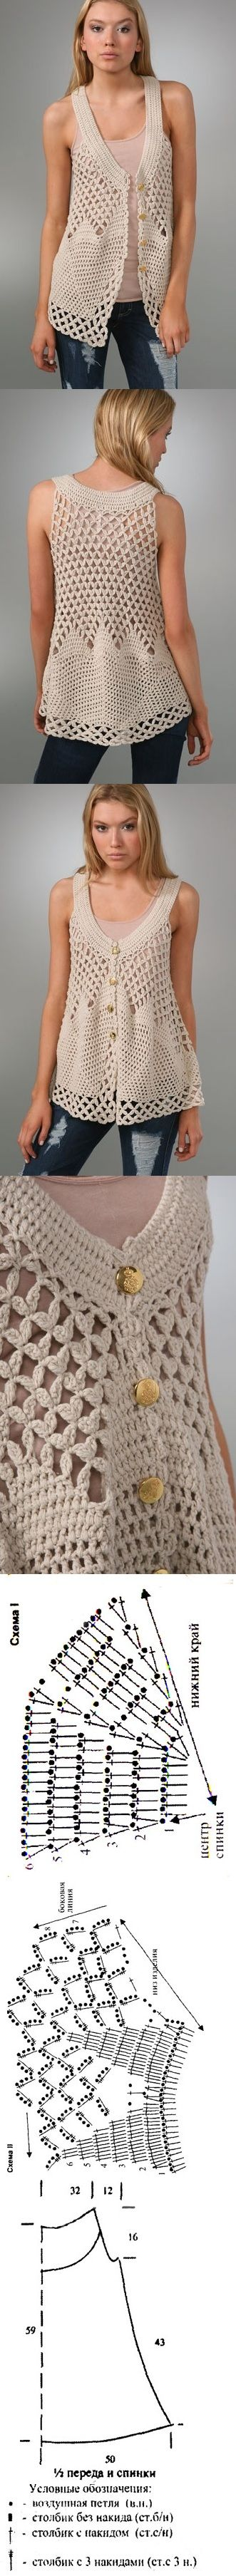 Crochet cotton vest – has graphs